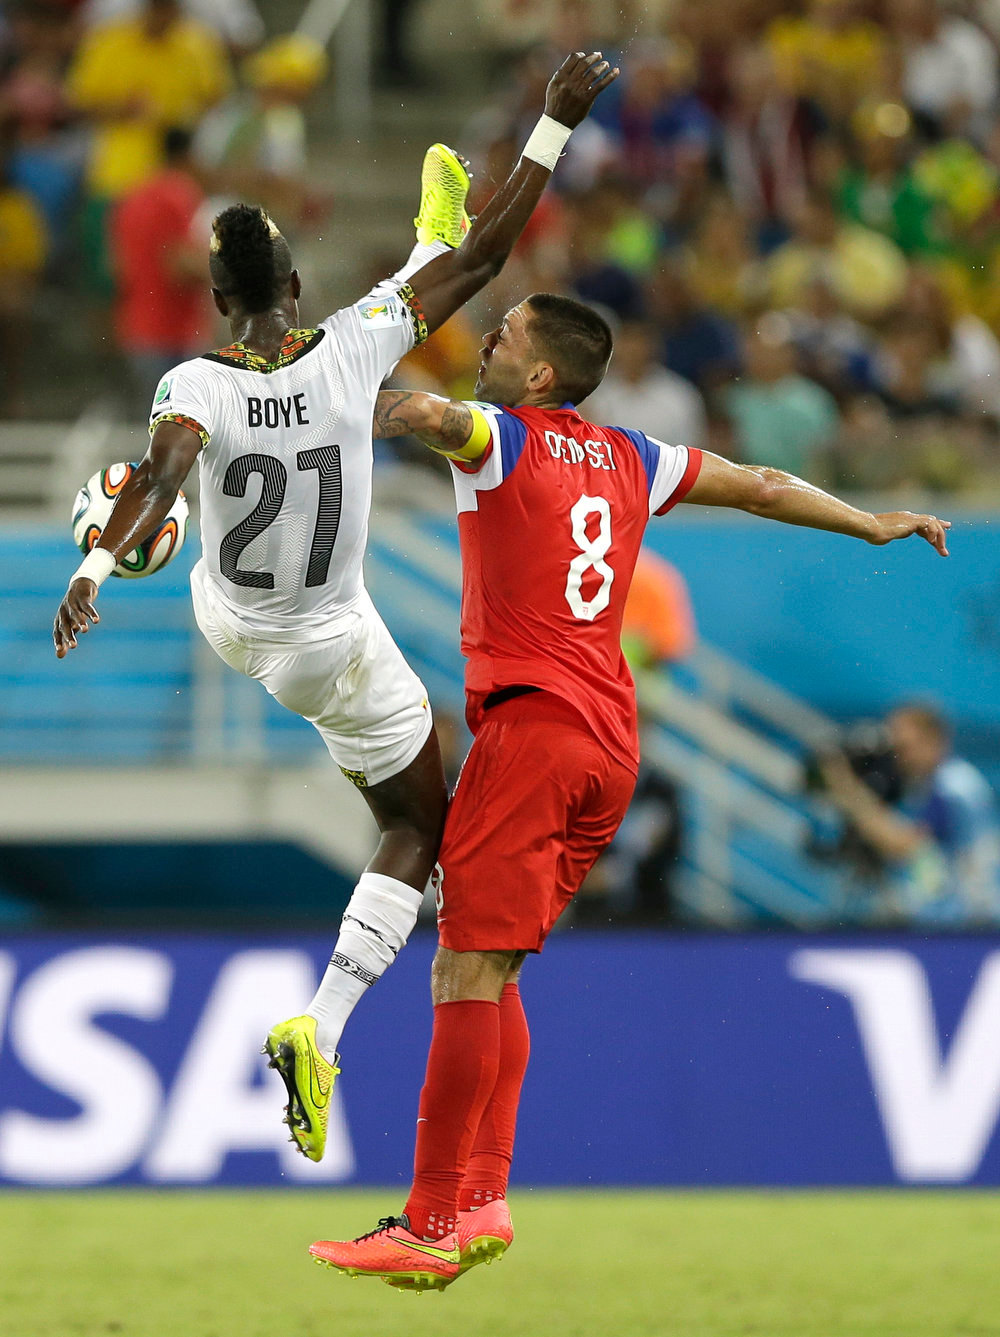 Description of . Ghana's John Boye, left, challenges United States' Clint Dempsey for the ball during the group G World Cup soccer match between Ghana and the United States at the Arena das Dunas in Natal, Brazil, Monday, June 16, 2014. (AP Photo/Ricardo Mazalan)